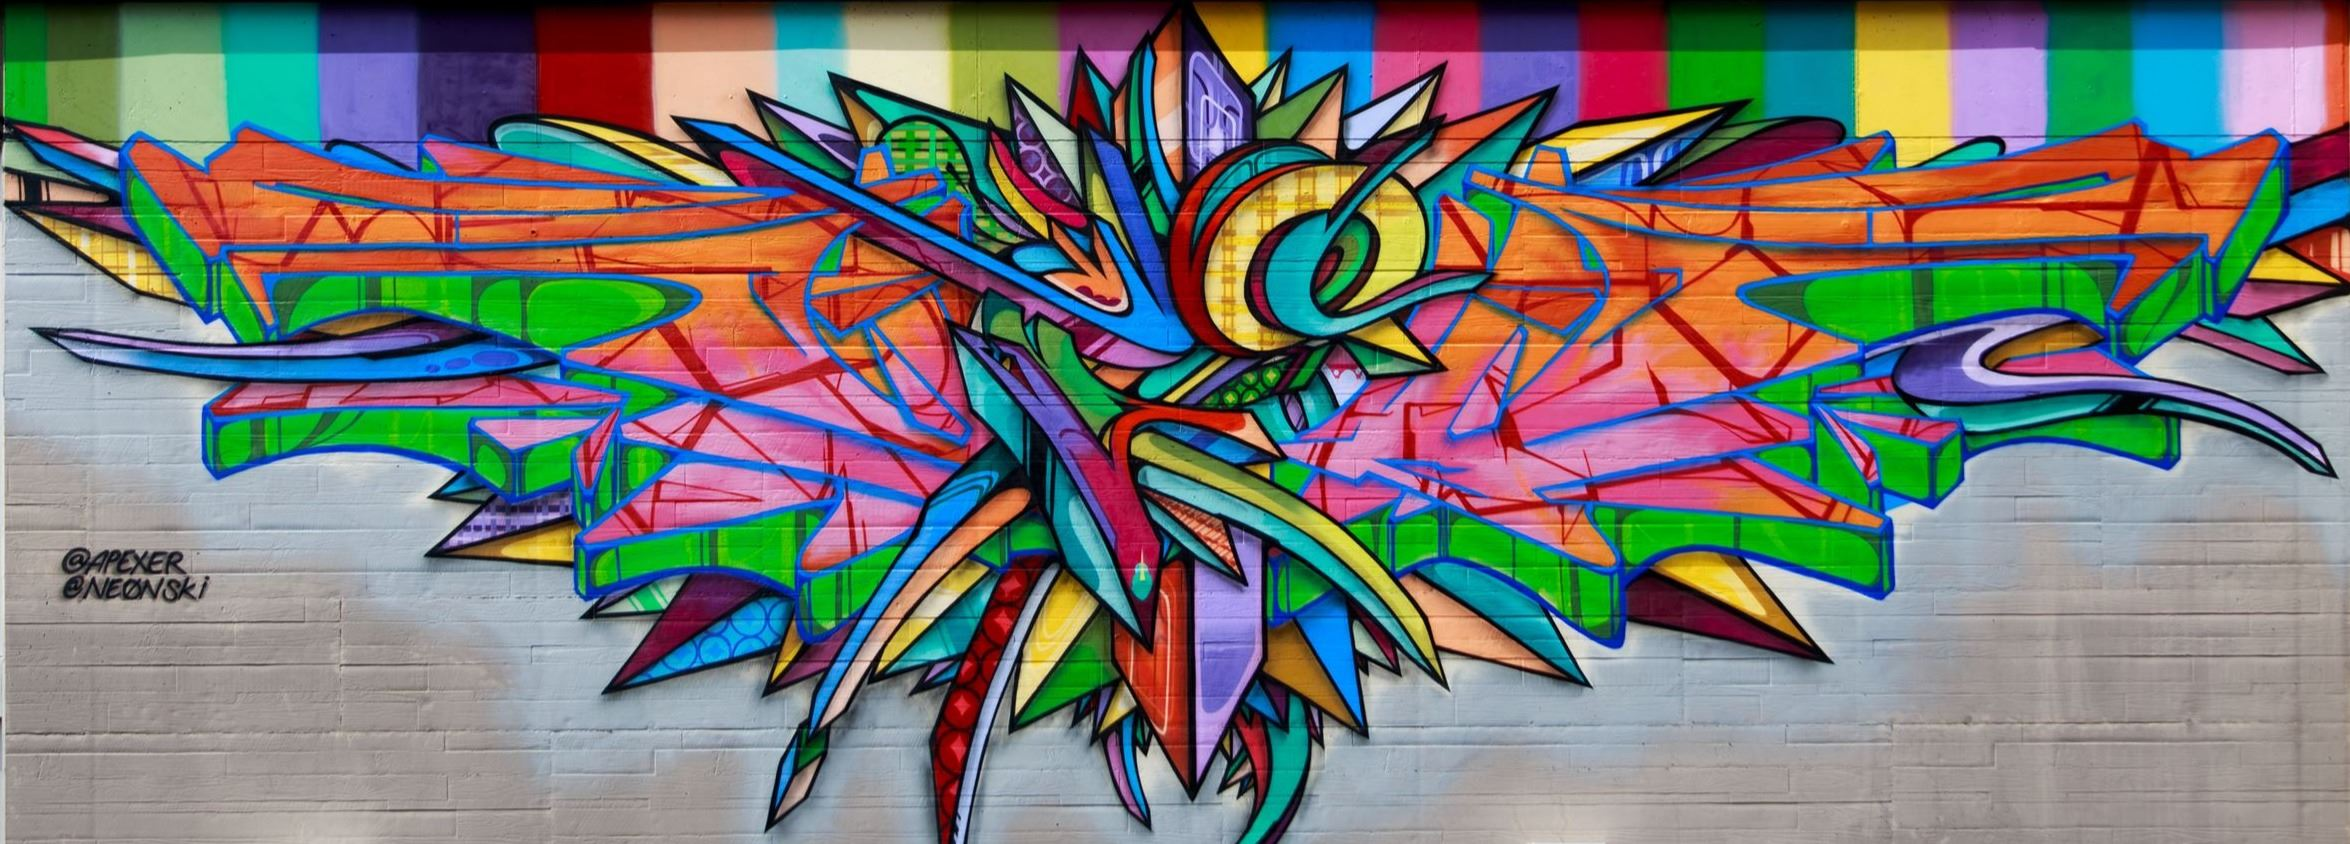 mural by APEX and NEON at Schack Art Center